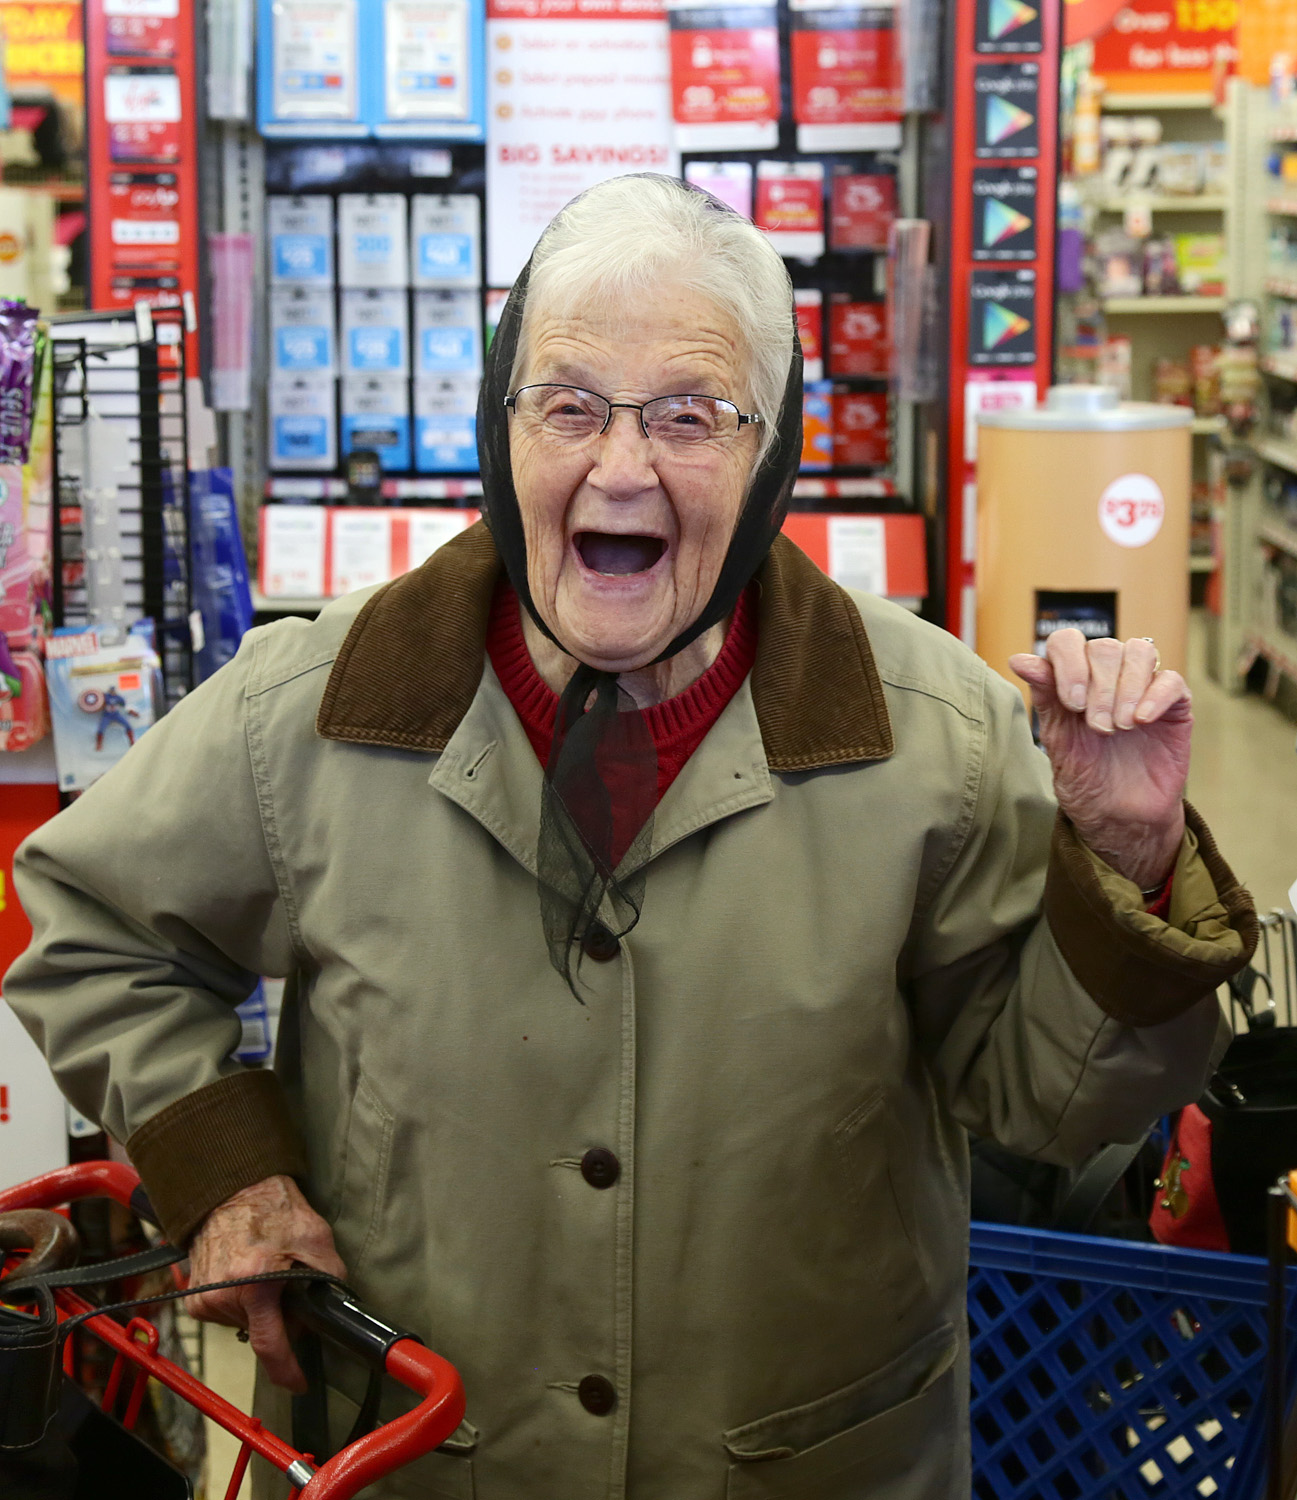 Ending this on a happy note. 93 year old Marth Smith reacts after finding out her things were paid for by some good samaritans just before Christmas.  Hope I can be like her someday!